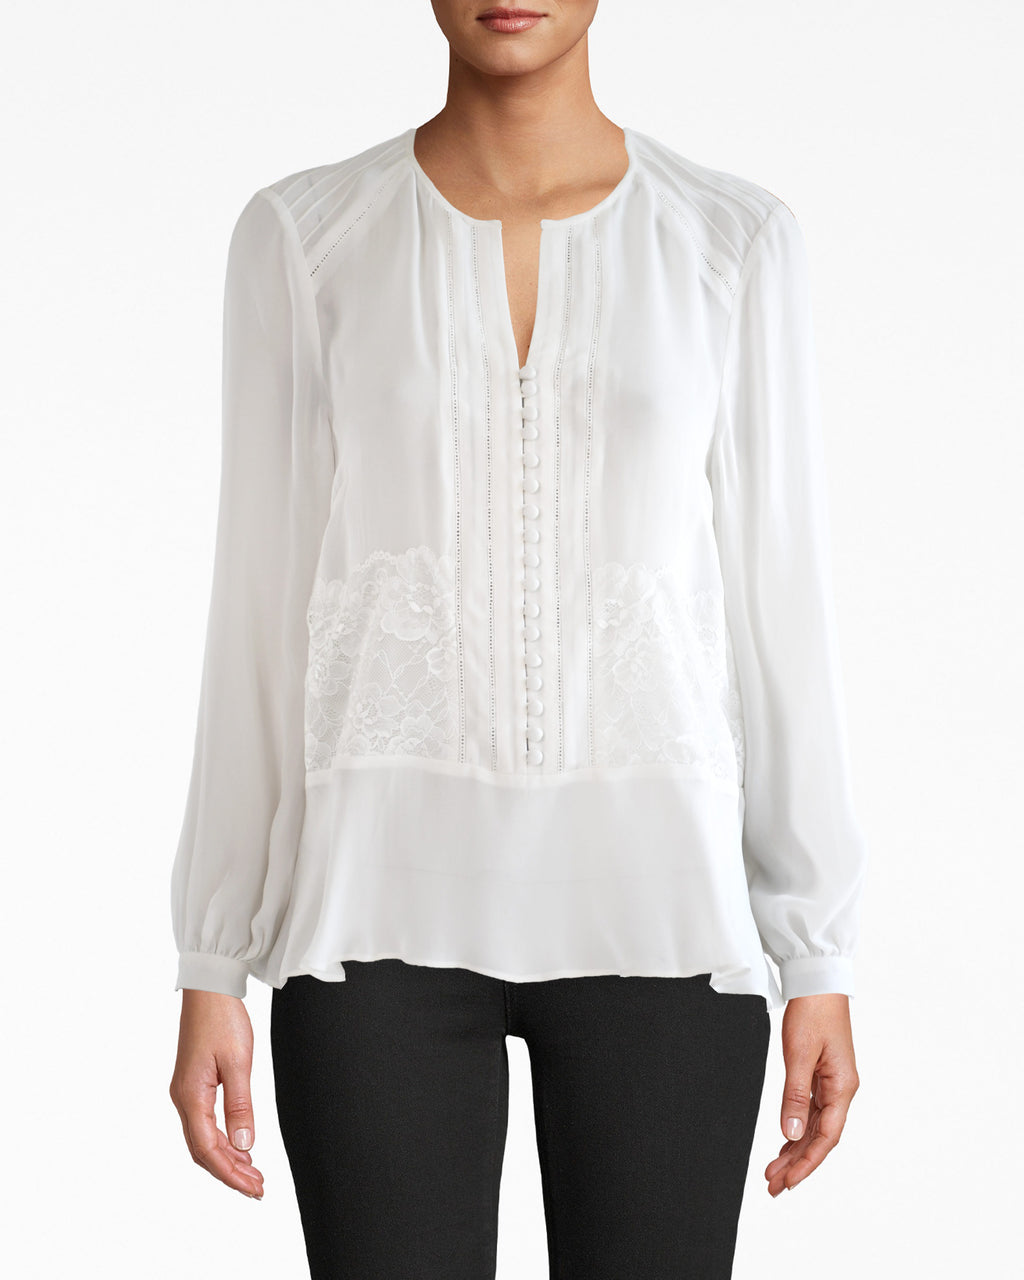 CT17980 - LONG SLEEVE LACE SILK BLOUSE - tops - blouses - AIRY SILK AND LACE DETAILS MAKE THIS FEMININE PIECE AN EASY GO-TO. FEATURES A V NECK, BUTTON FRONT AND CINCHED SLEEVES AT THE WRIST. Add 1 line break STYLIST TIP: WEAR WITH YOUR FAVORITE JEANS AND BOLD EARRINGS.